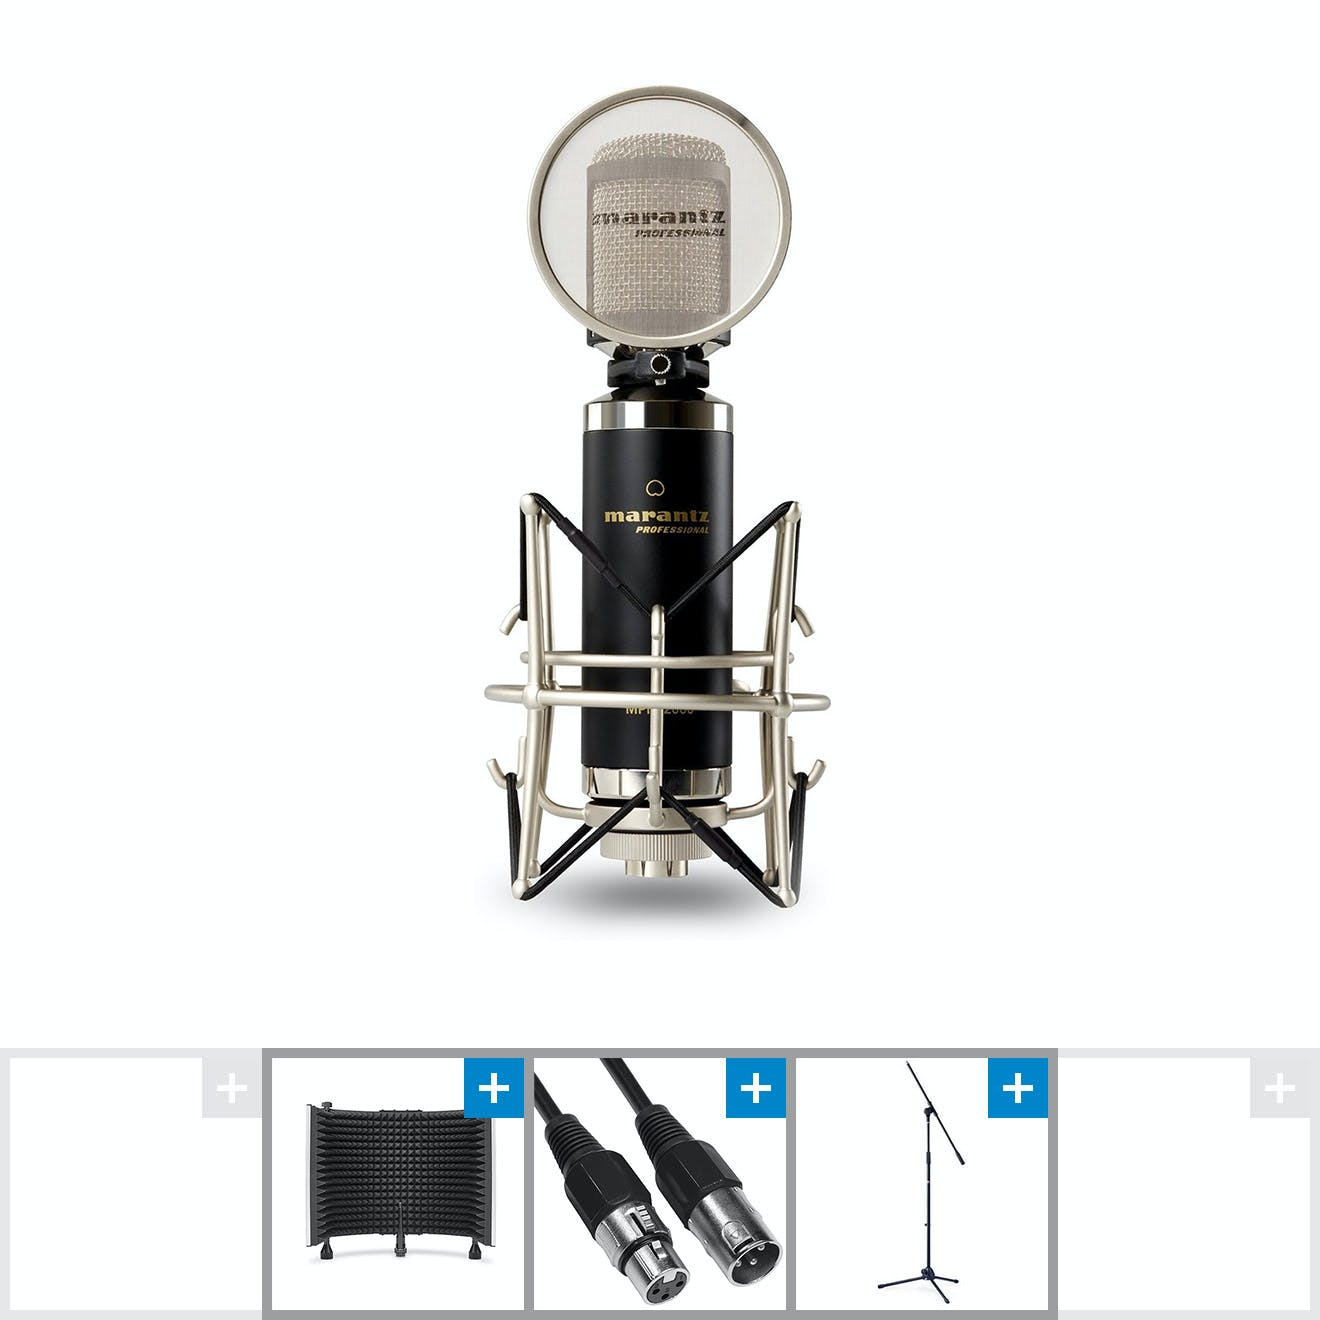 Image for Marantz MPM2000 Microphone w/ SoundShield Reflection Filter, Cable and Stand from Andertons Music Co.